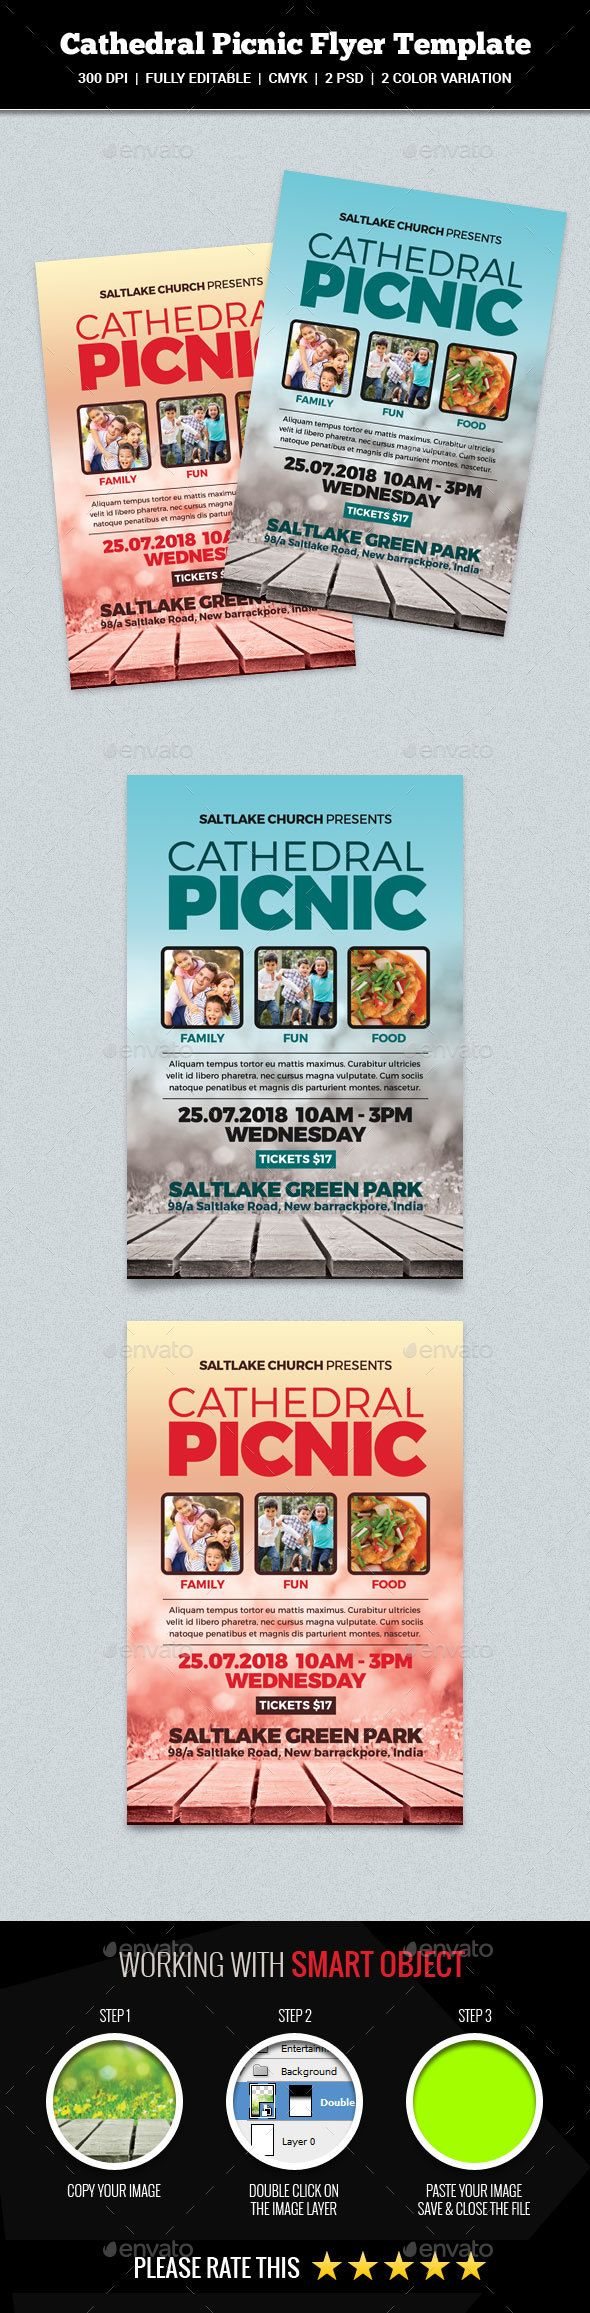 Cathedral Picnic Flyer  Church Flyers  Psd FlyerS  Print